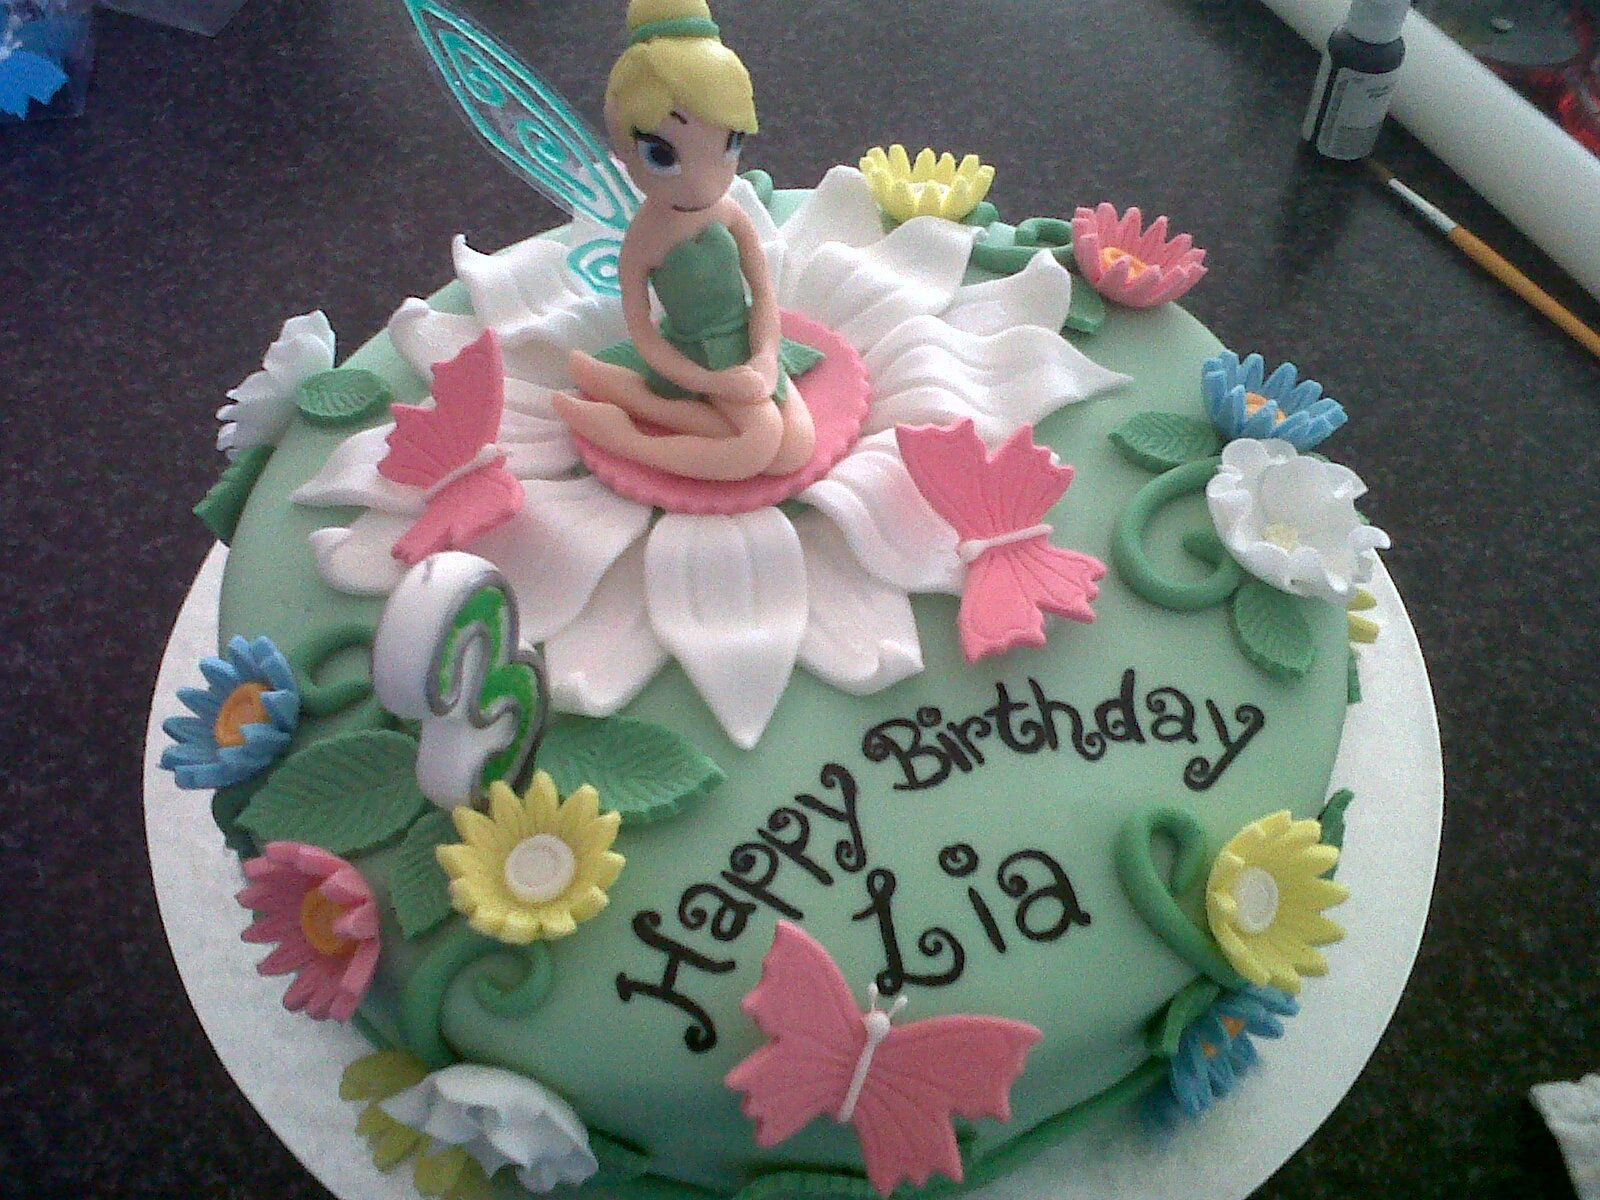 Tinkerbell Cake 1 Lizzie Botma Cape Town South Africa Cakes